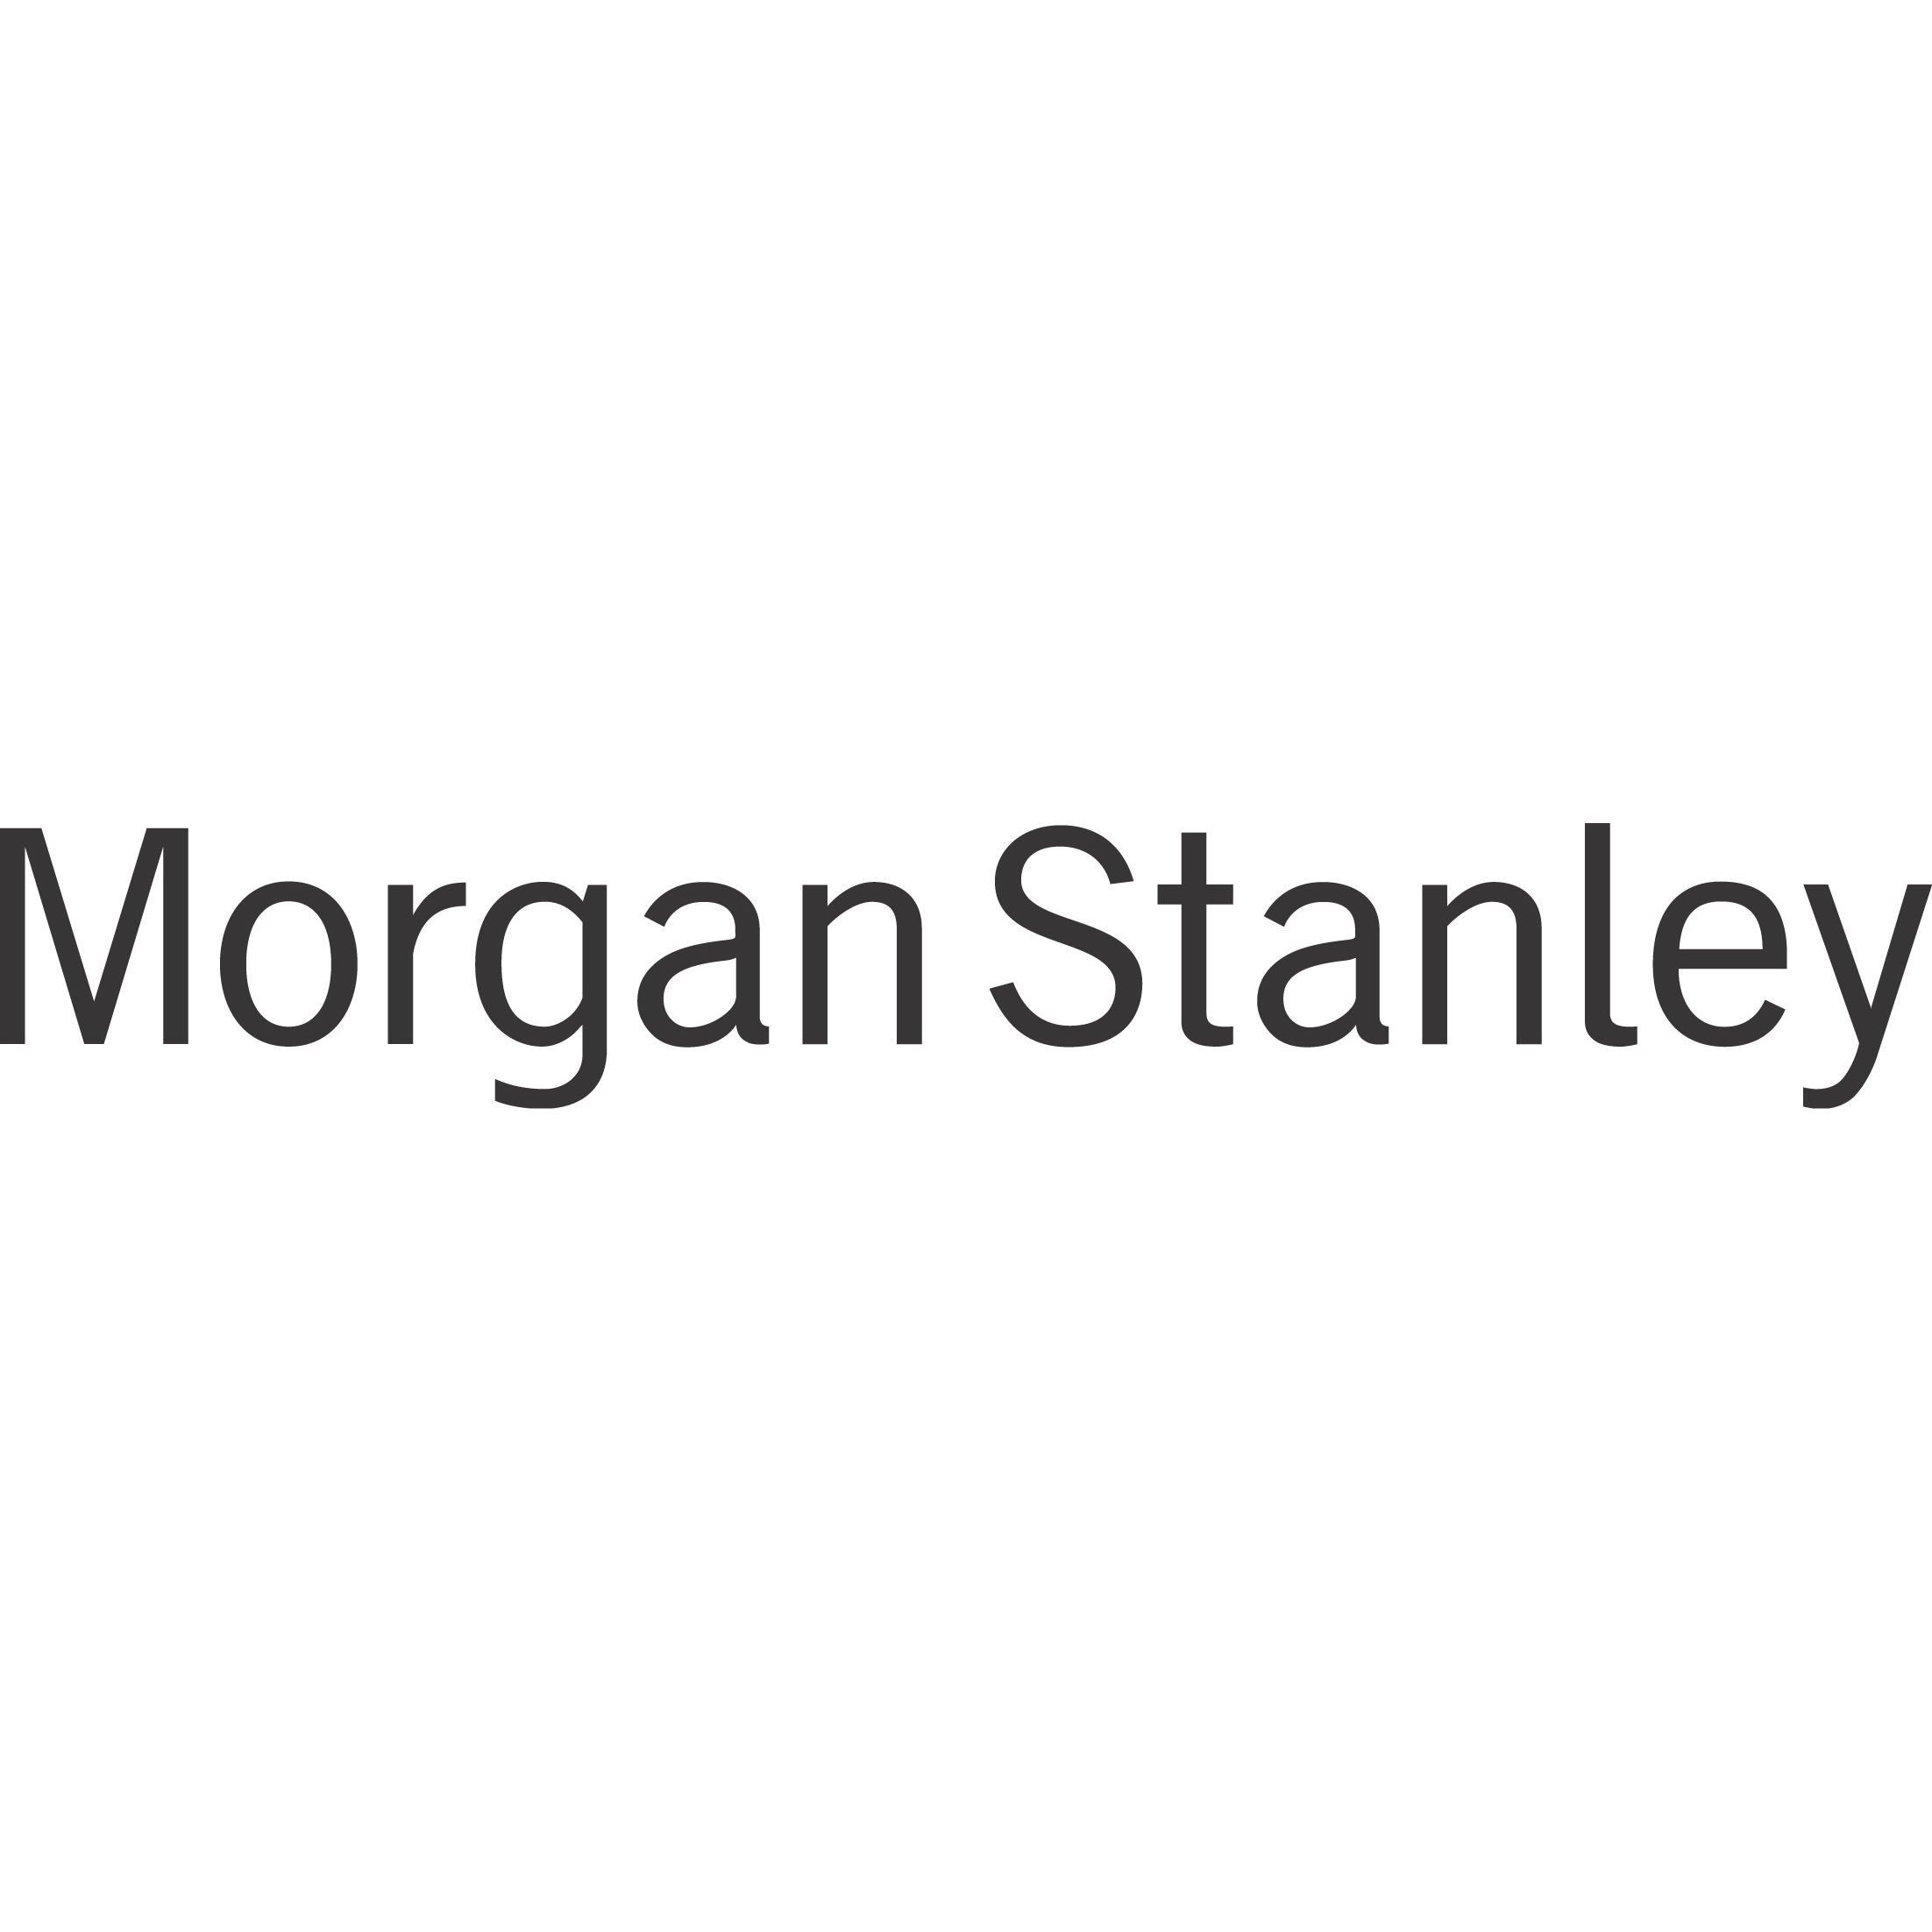 Ryan Johnson - Morgan Stanley | Financial Advisor in Sarasota,Florida